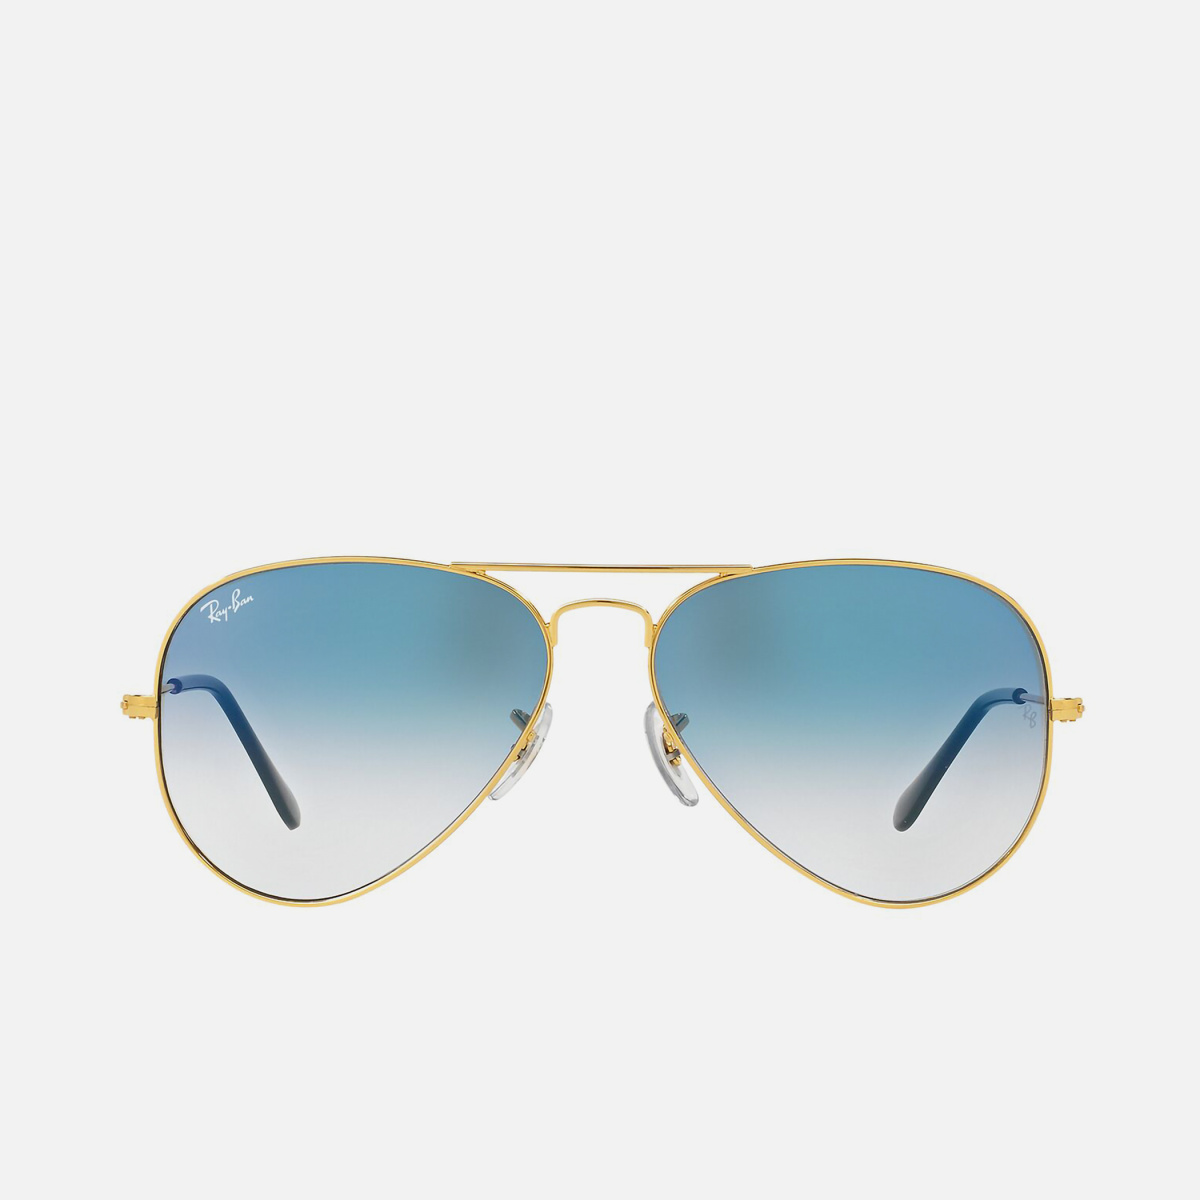 RAY-BAN Men Solid UV-Protected Aviator Sunglasses - 0RB30250013F58